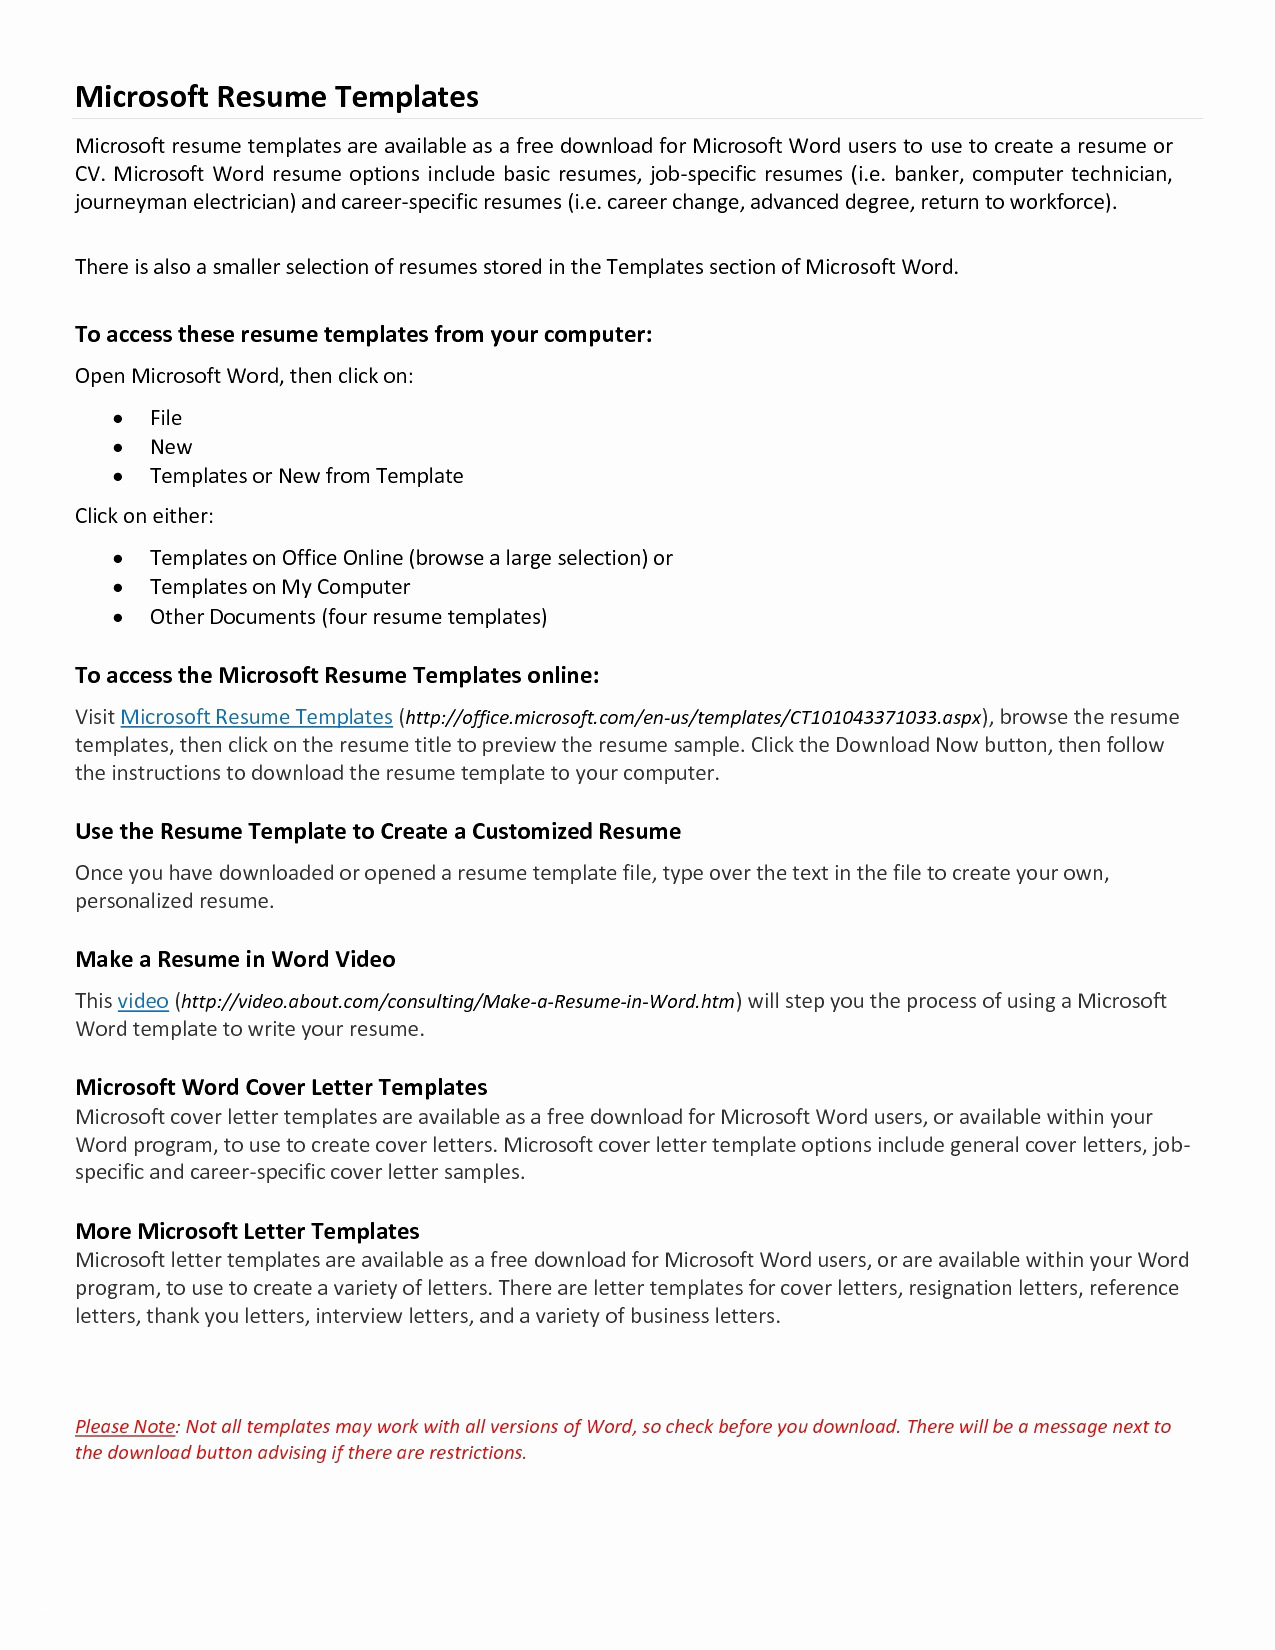 Employment Verification Letter Template Microsoft - Resume Templates Microsoft Word Elegant Microsoft Word Resume Sample